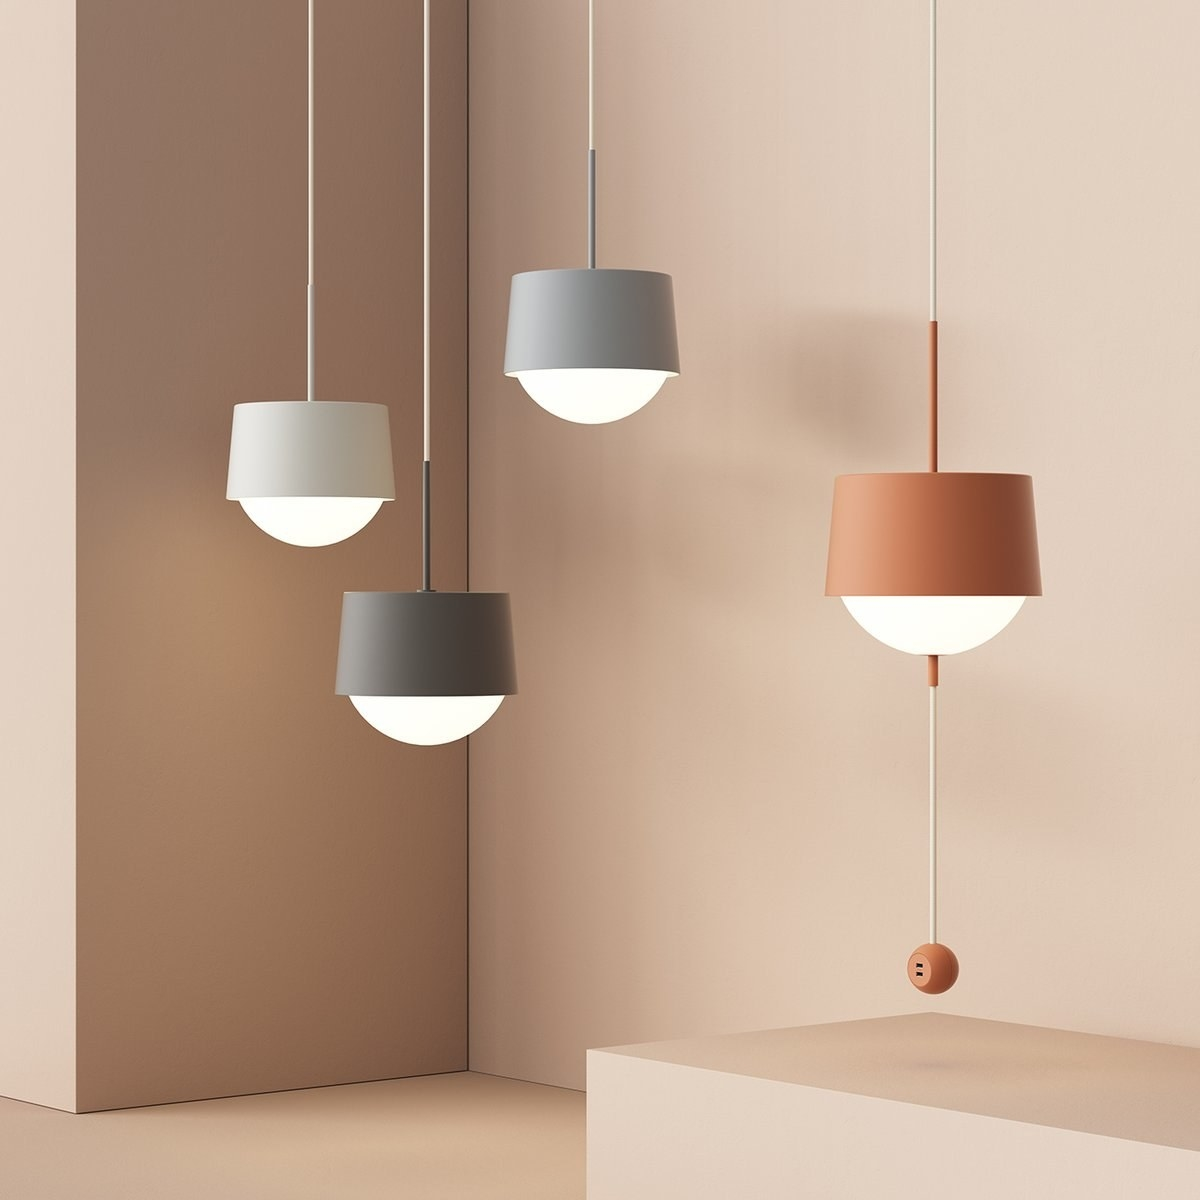 Modern light with half orb glass and small cover in shape of classic lamp shade hanging from minimalist wire